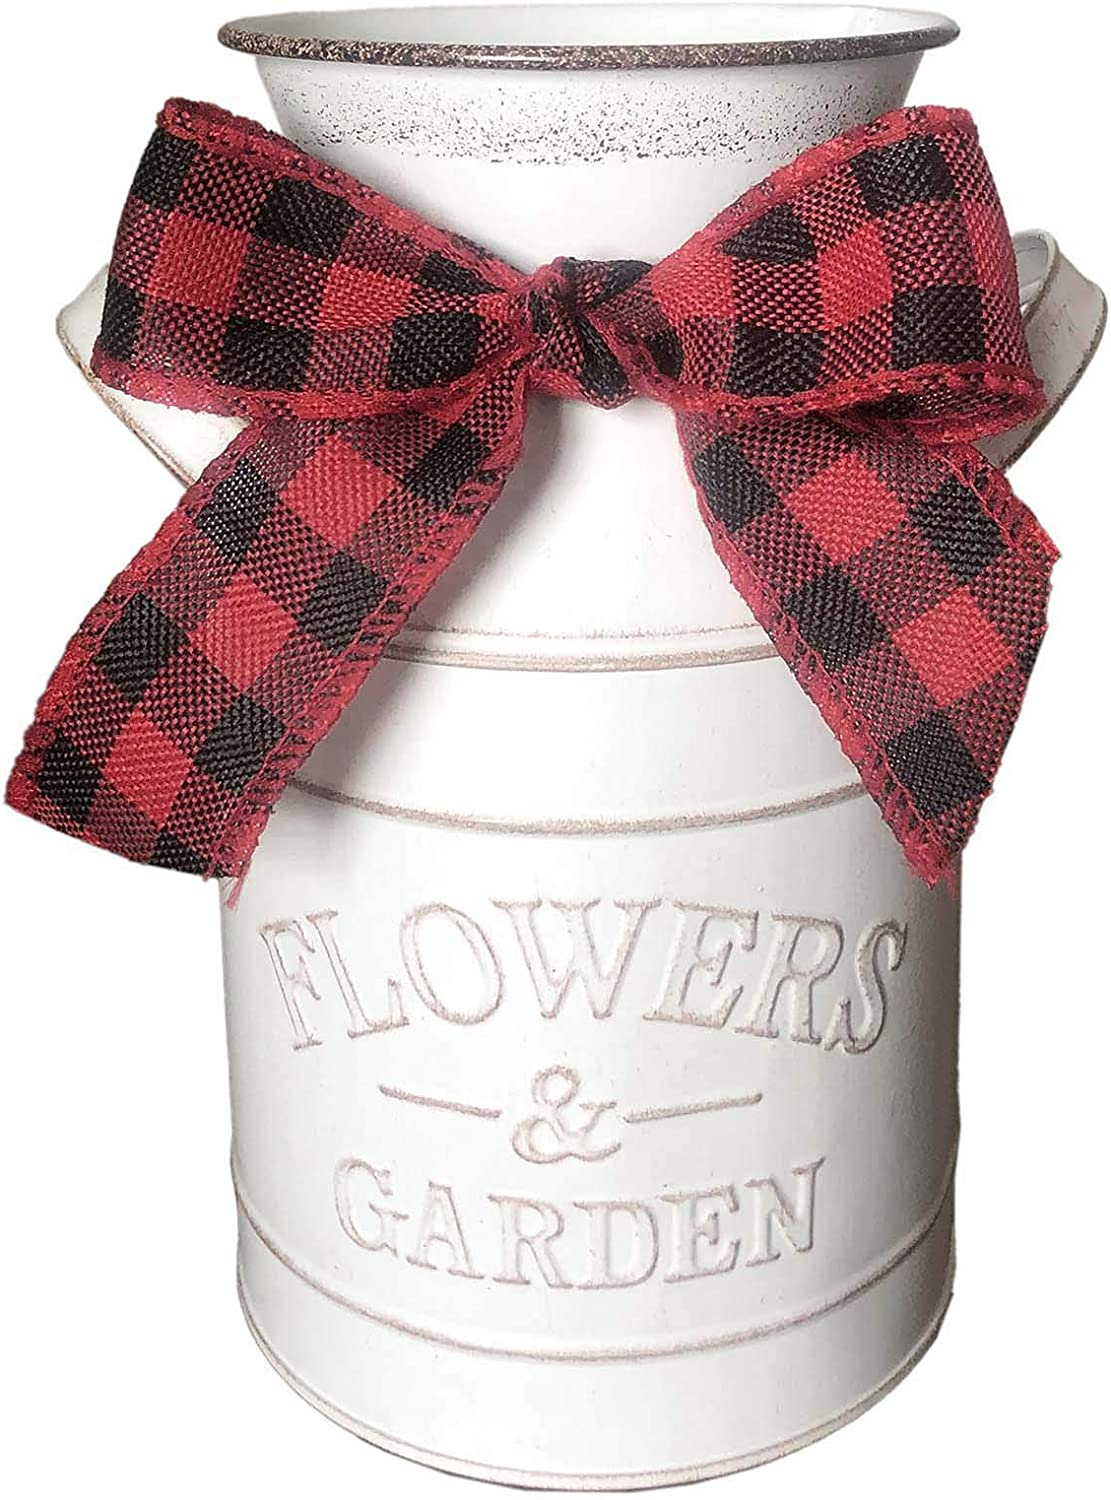 Farmhouse Flower Vase Milk Can Jug with Red & Black Checkerd Ribbon for Home Rustic Decor,, Wedding Decor or Gift(White vase)